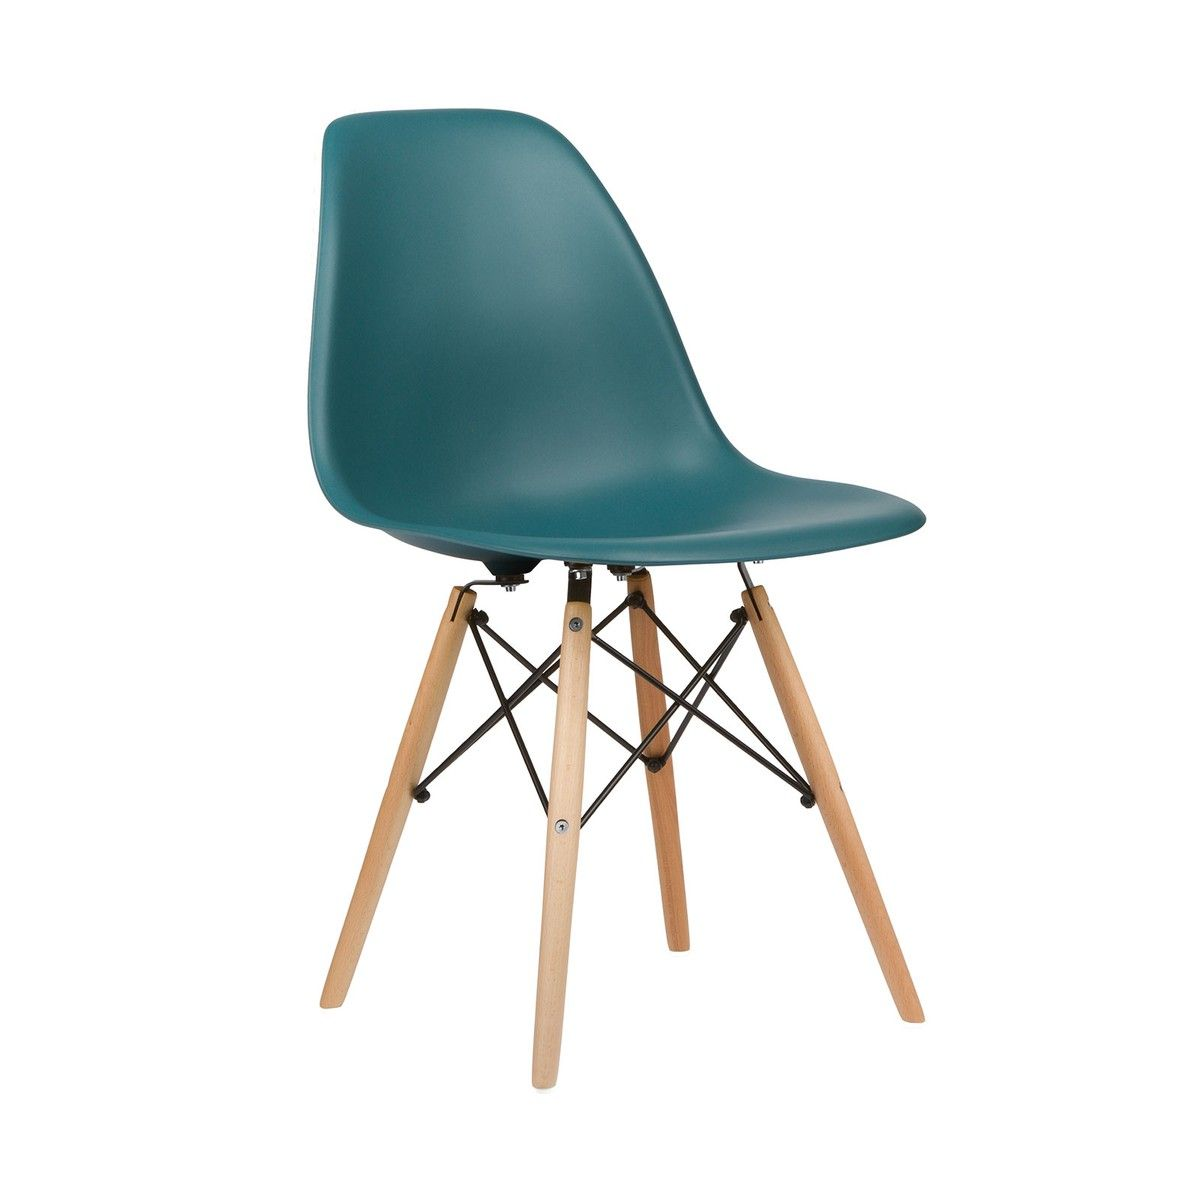 ingenious idea mid century side chair. Our Mid Century Slope Chair is an ingenious design inspired by iconic  manufacturing process